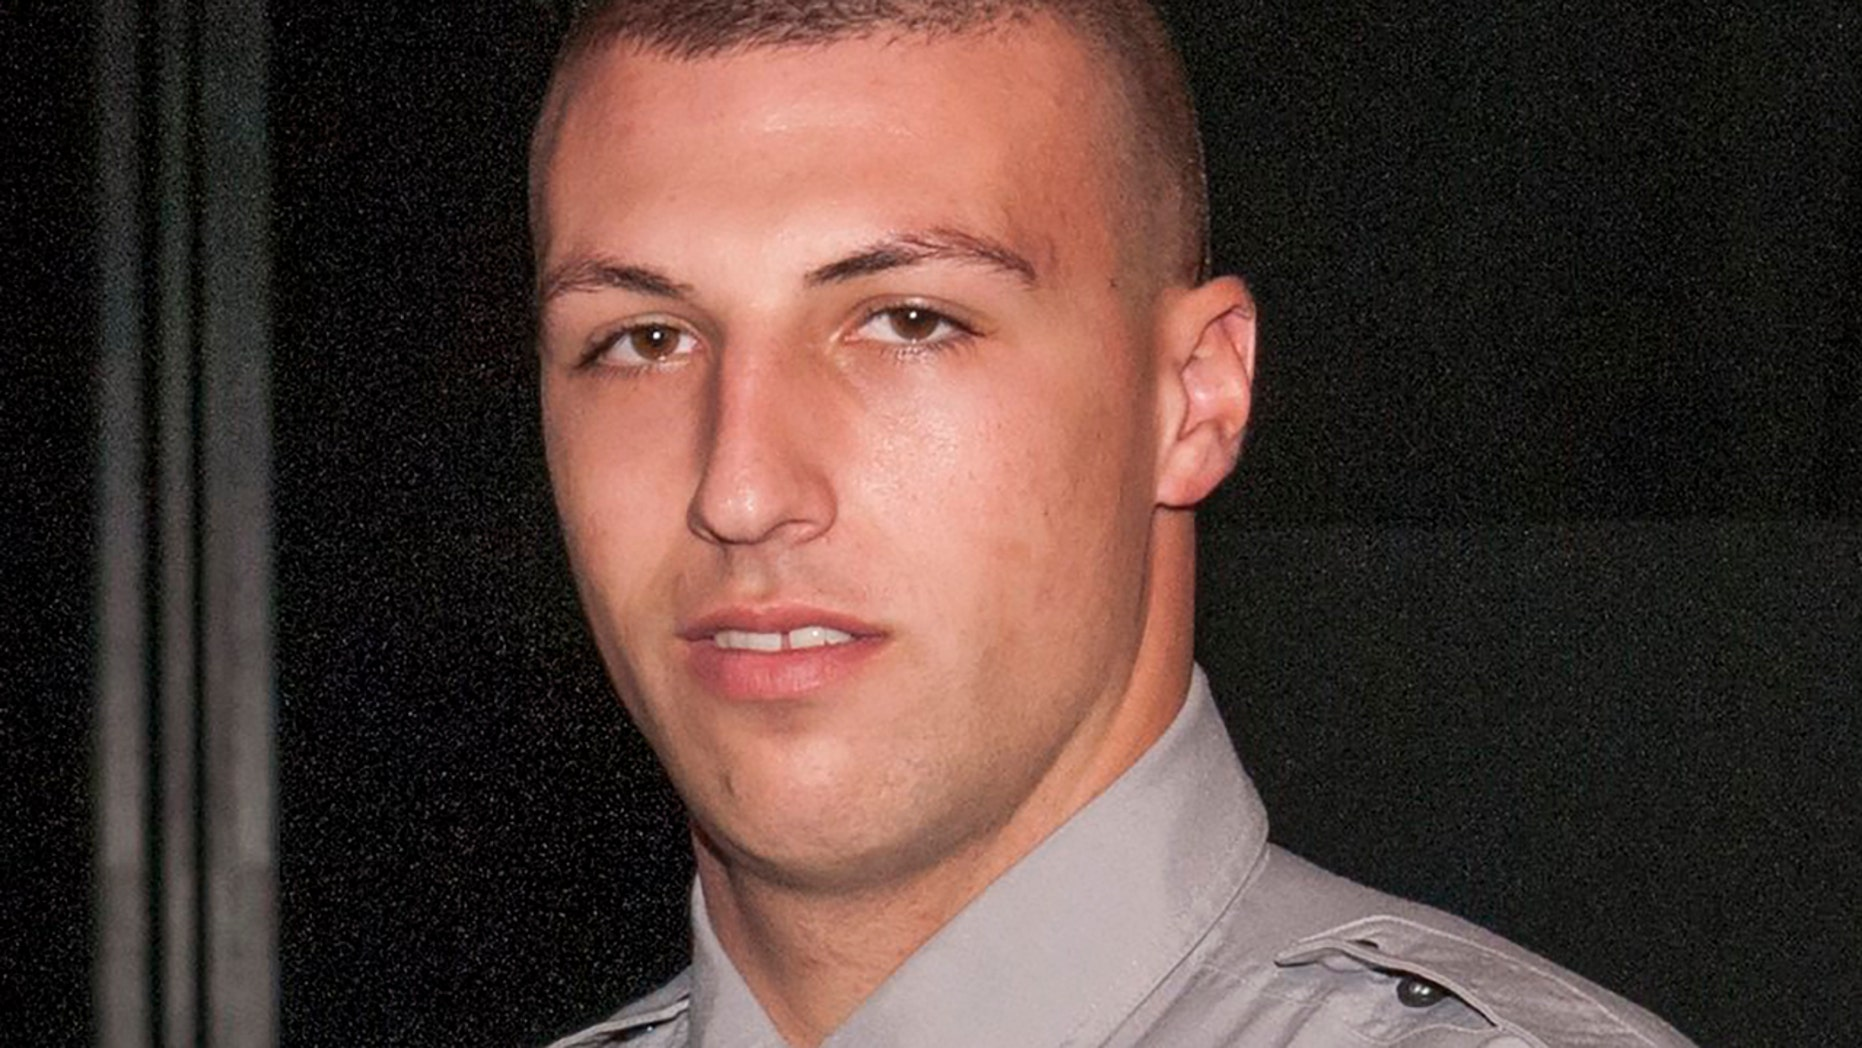 North Carolina state Trooper Samuel Bullard was killed pursuing a suspect Tuesday night.